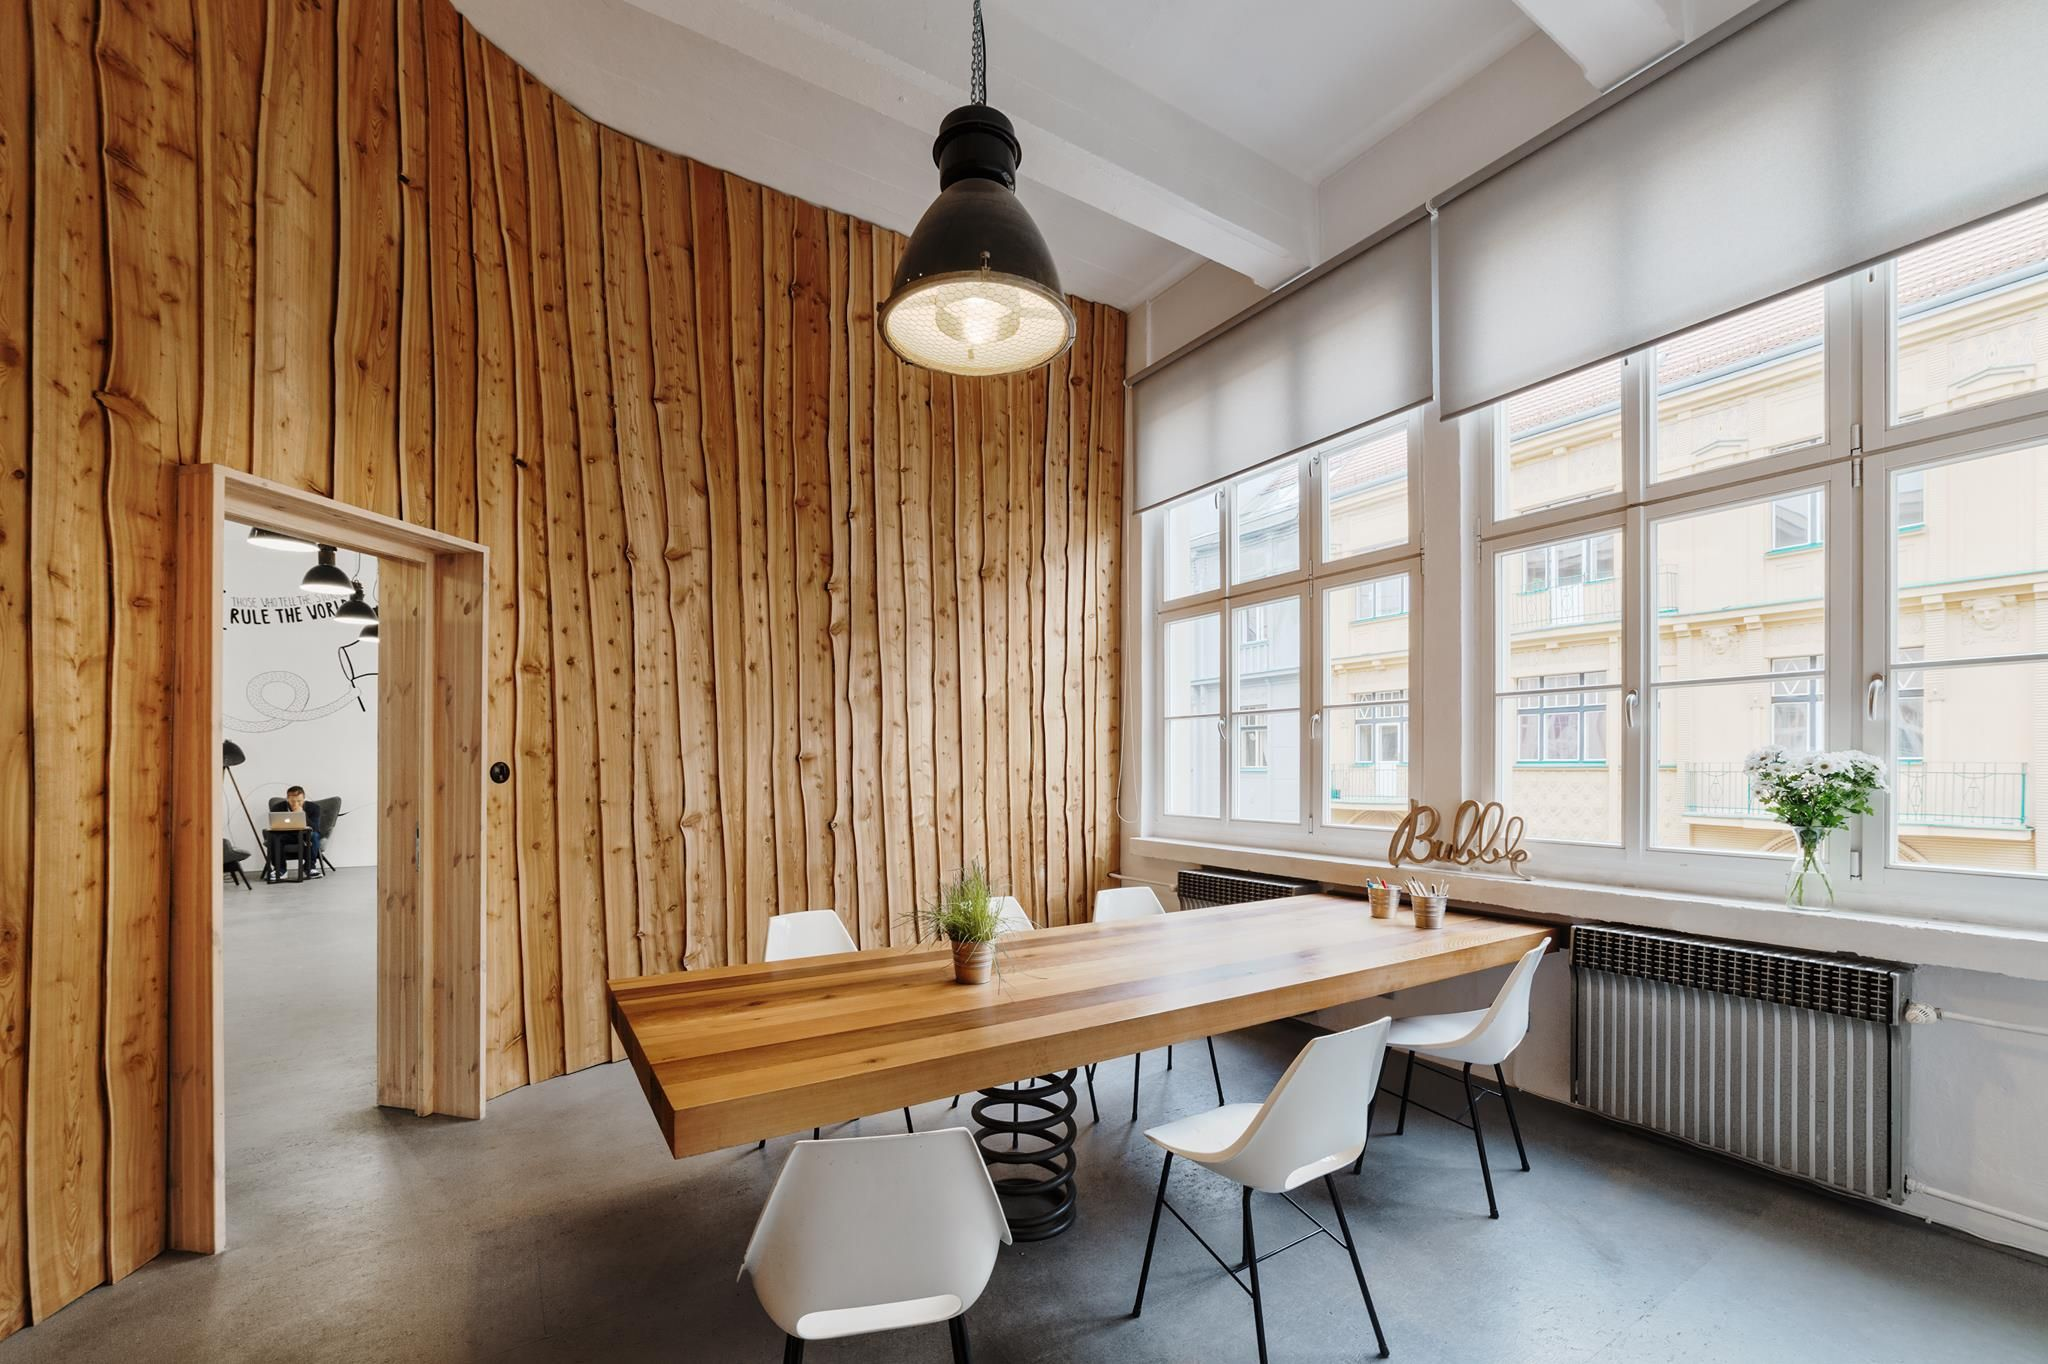 A Tour Of Bubble S New Super Cool Office Prague Meeting Rooms  # Muebles Cafe Internet